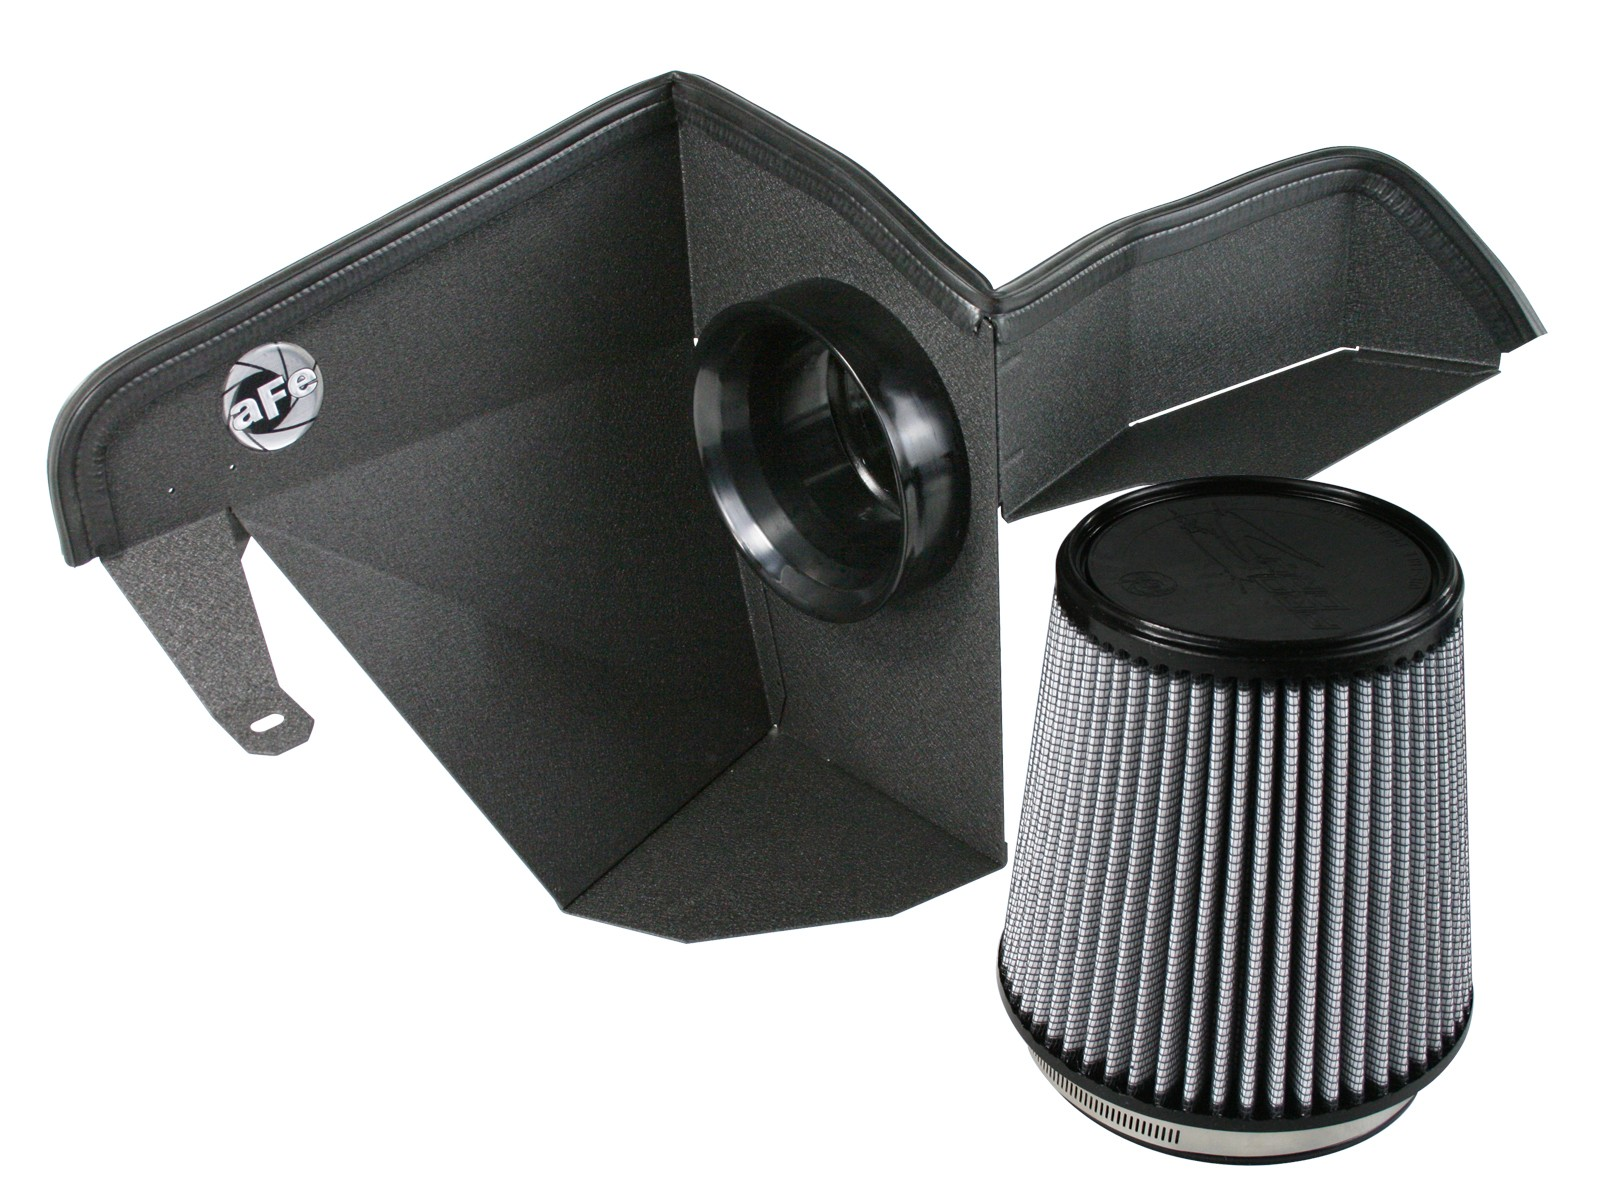 aFe POWER 51-10681 Magnum FORCE Stage-1 Pro DRY S Cold Air Intake System